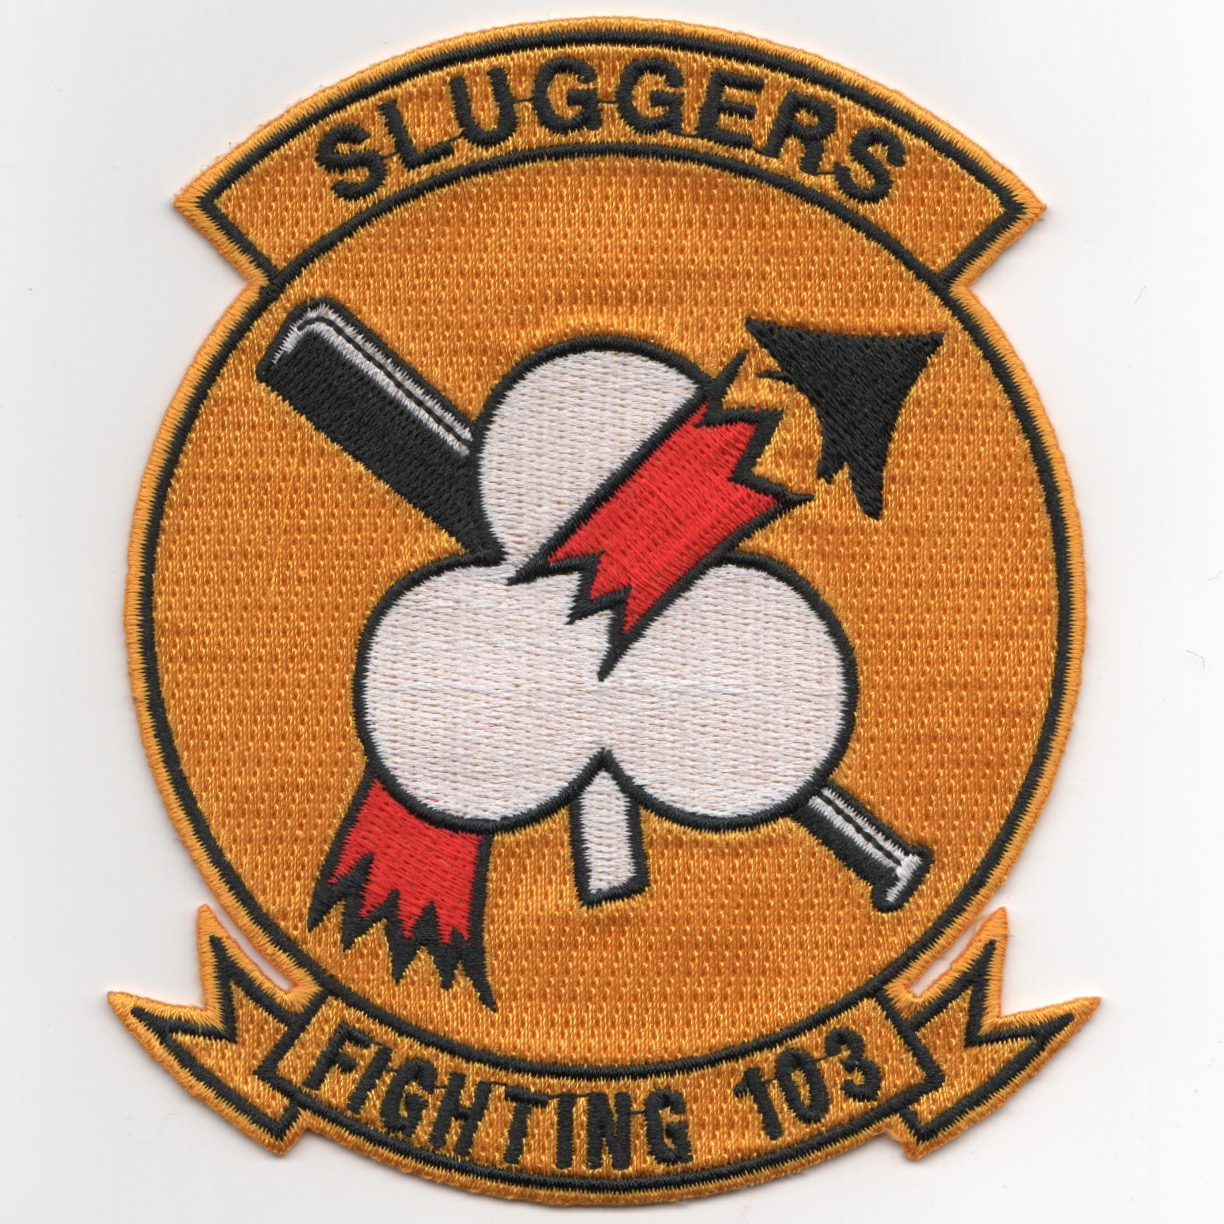 VF-103 Squadron Patch (Historical/Yellow)